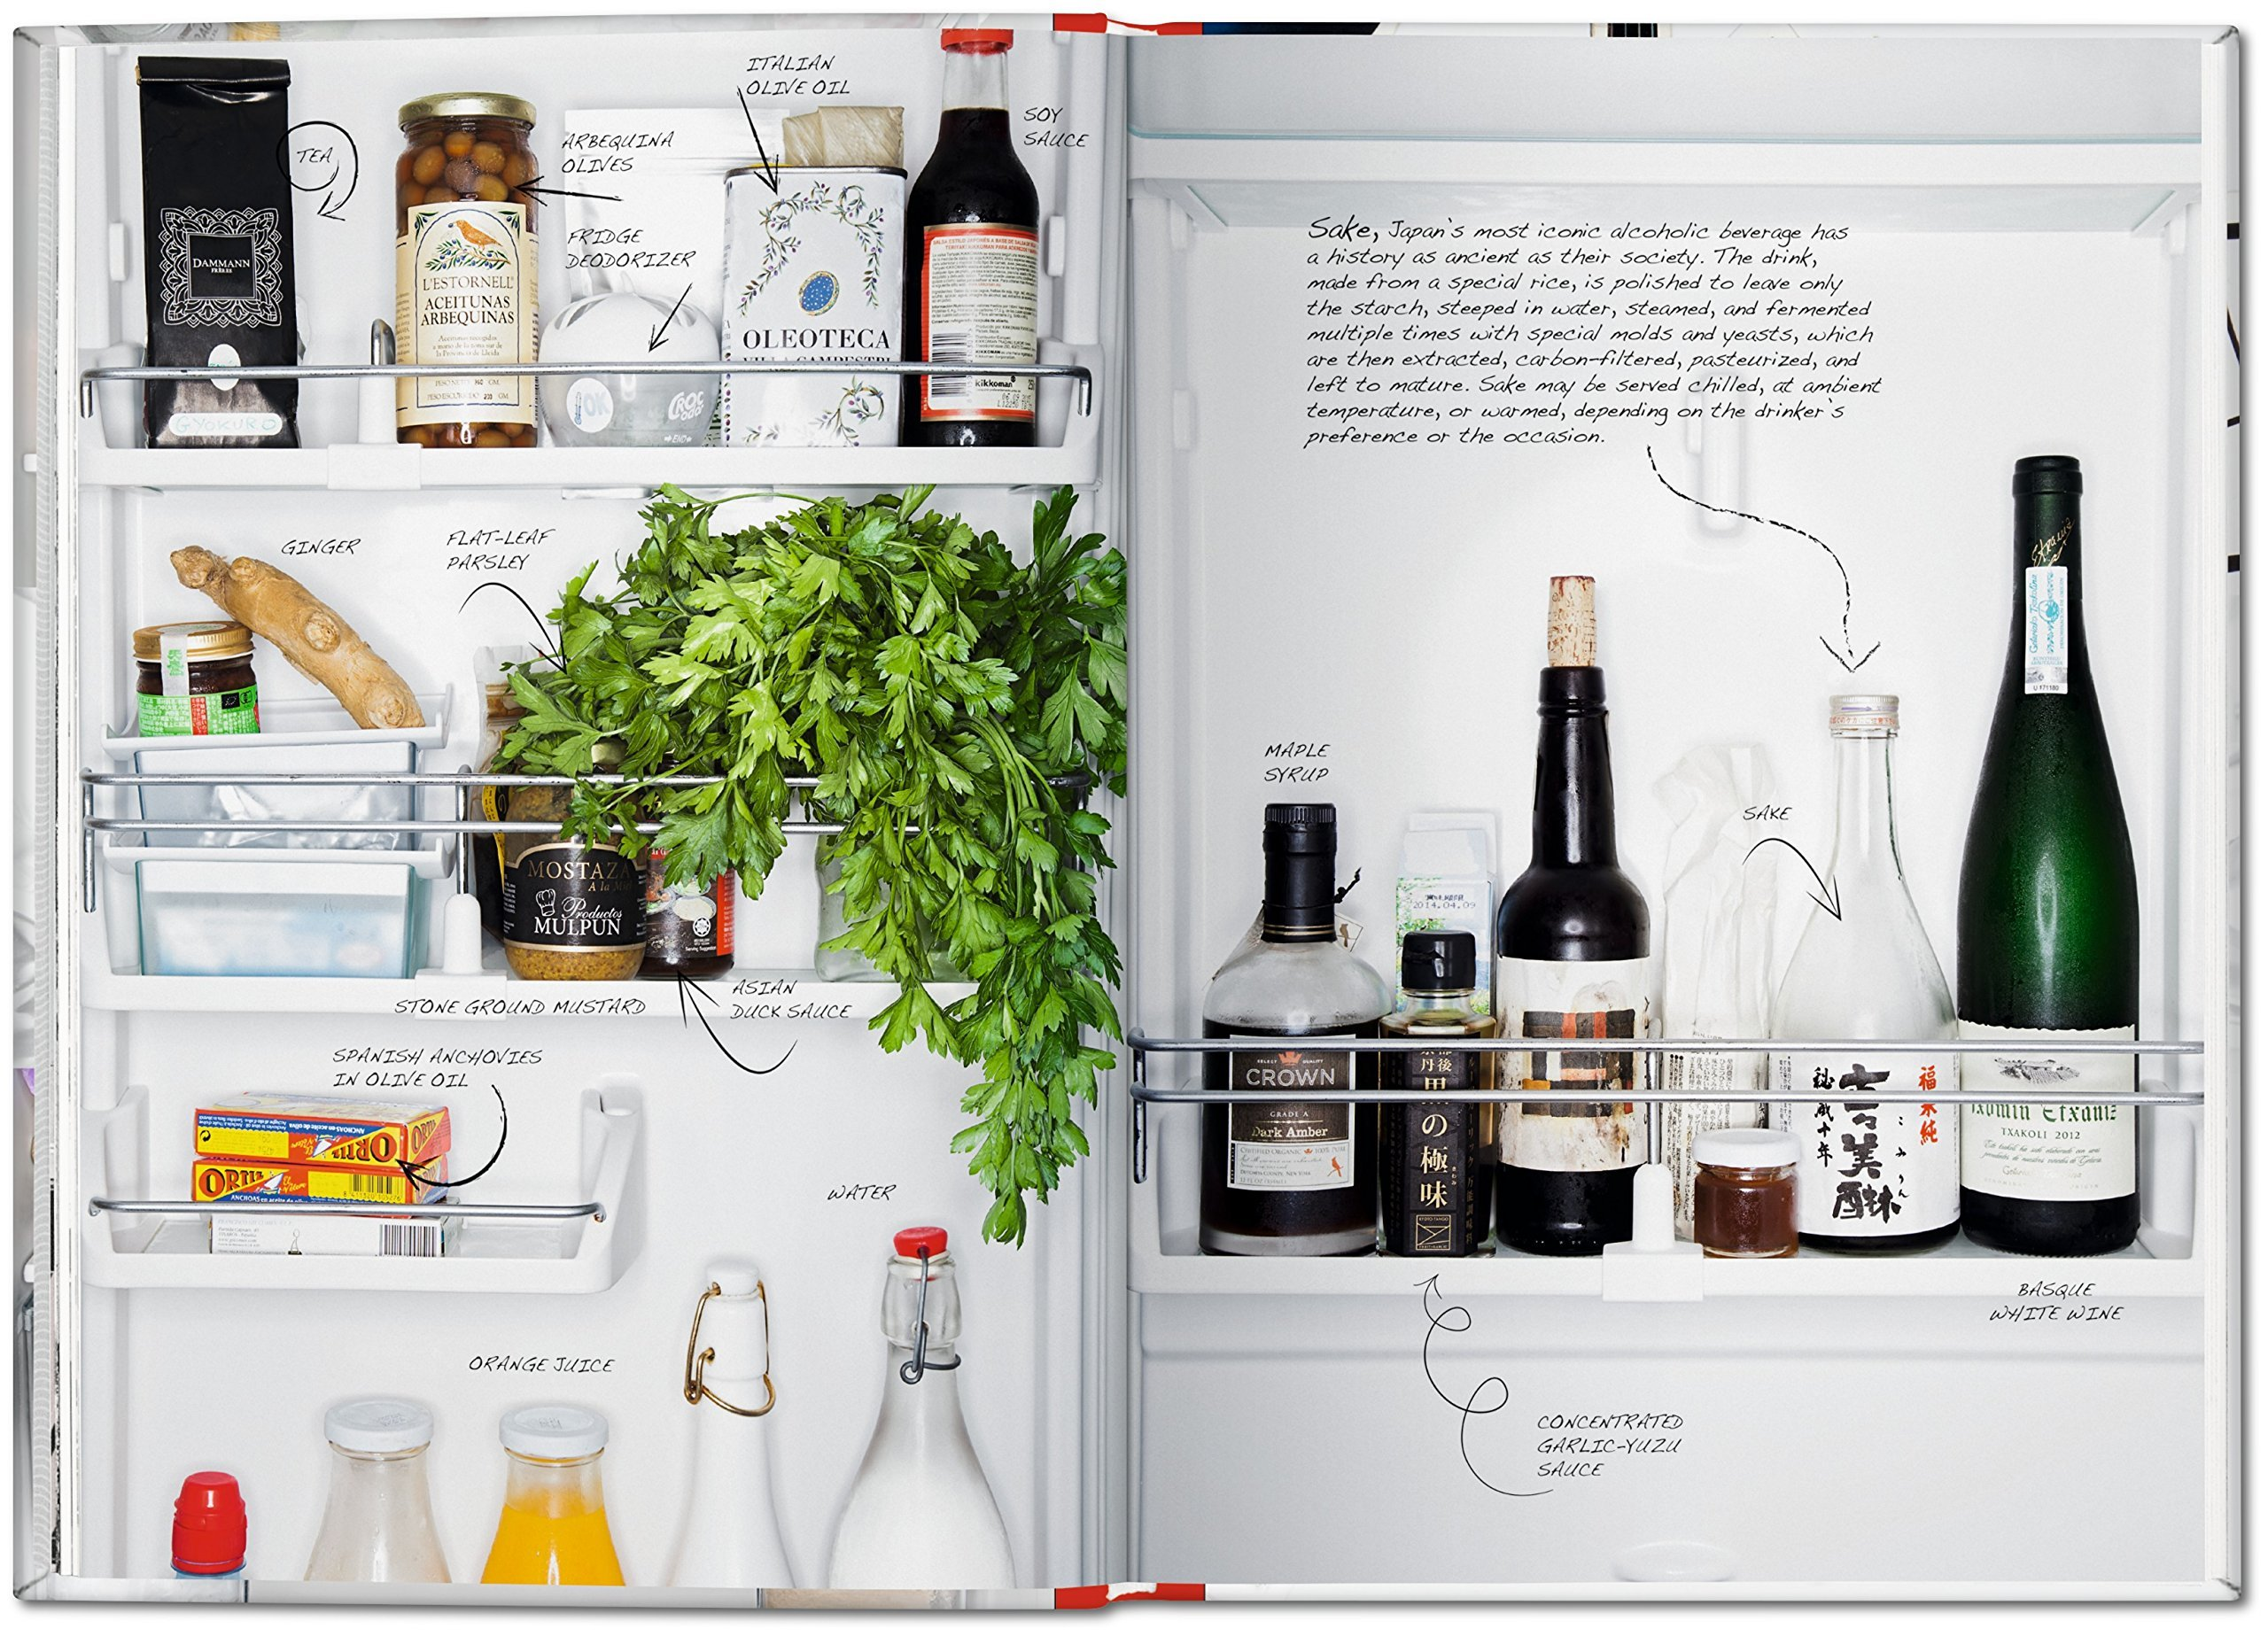 Inside a chefs fridge